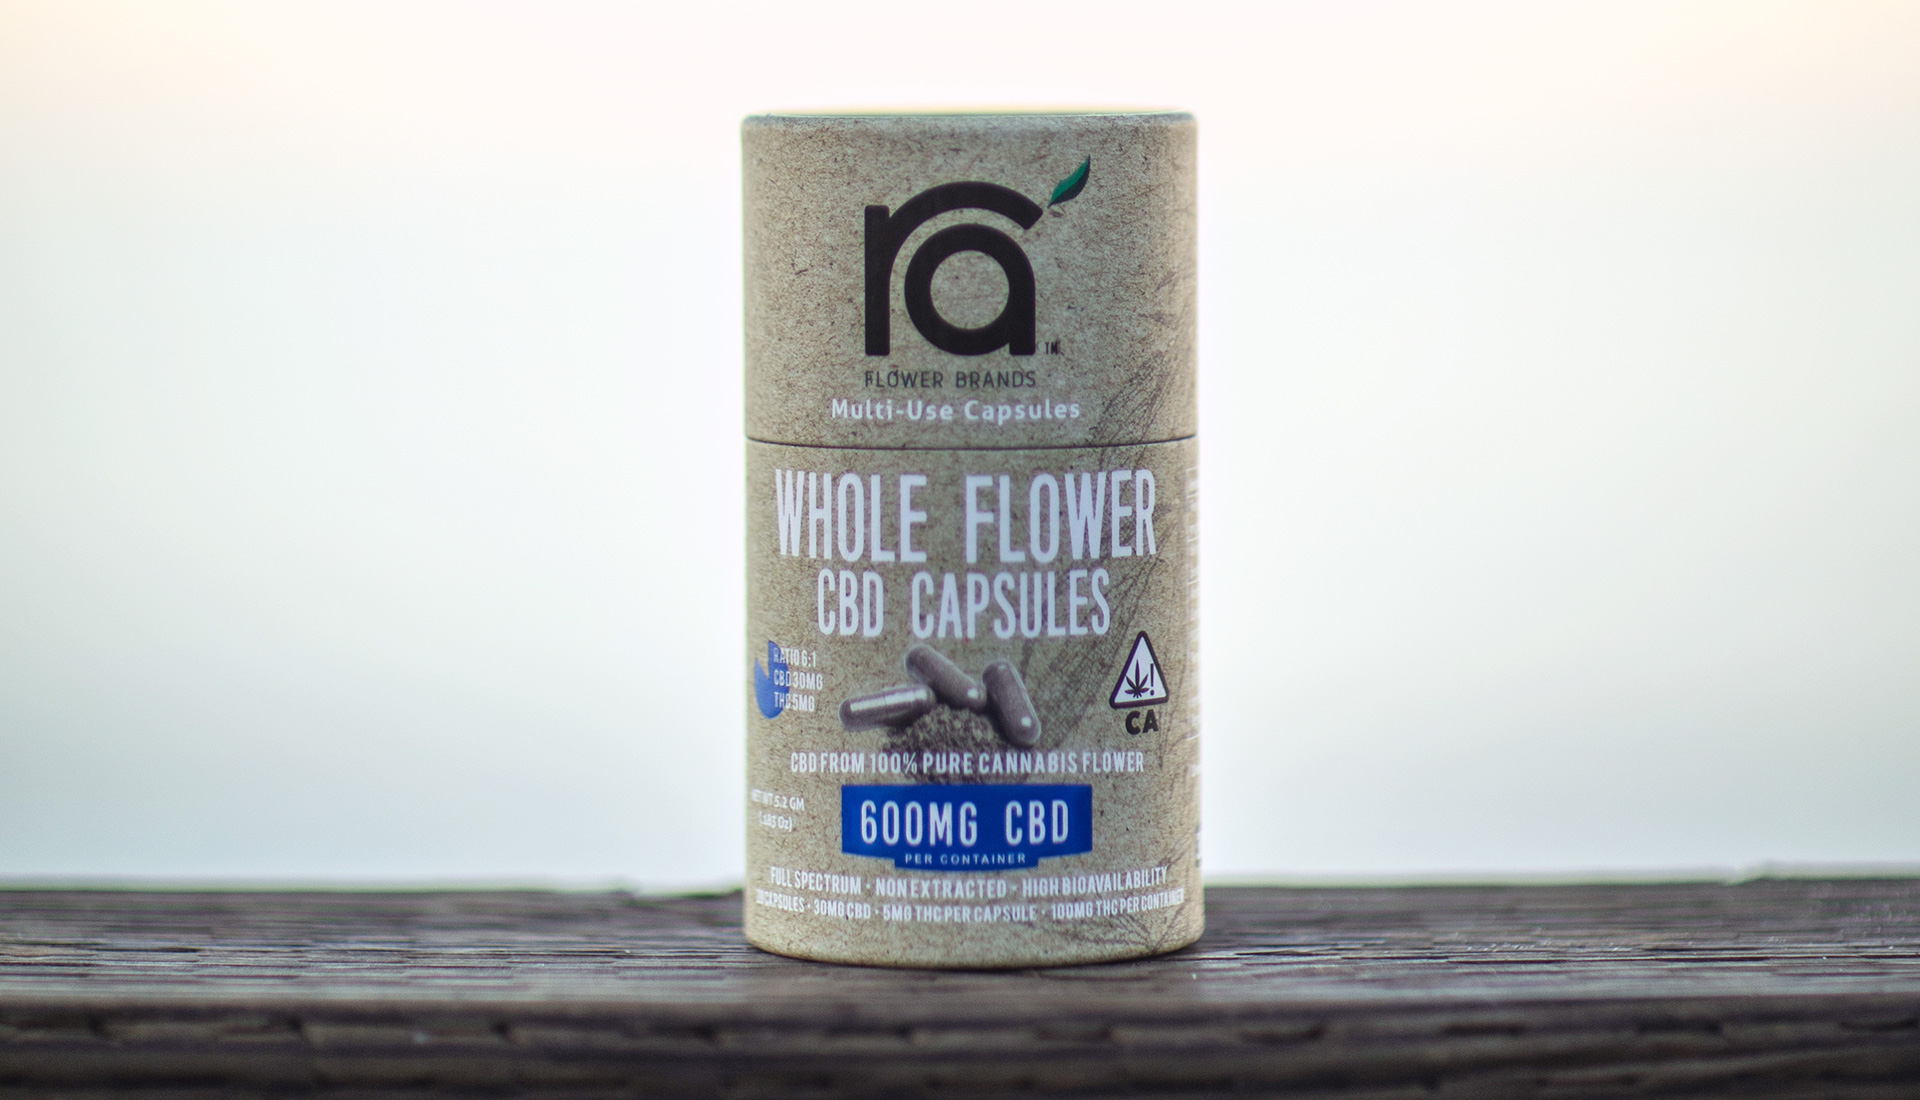 100% Whole Flower CBD Vegan Capsules Ra' Flower Brands